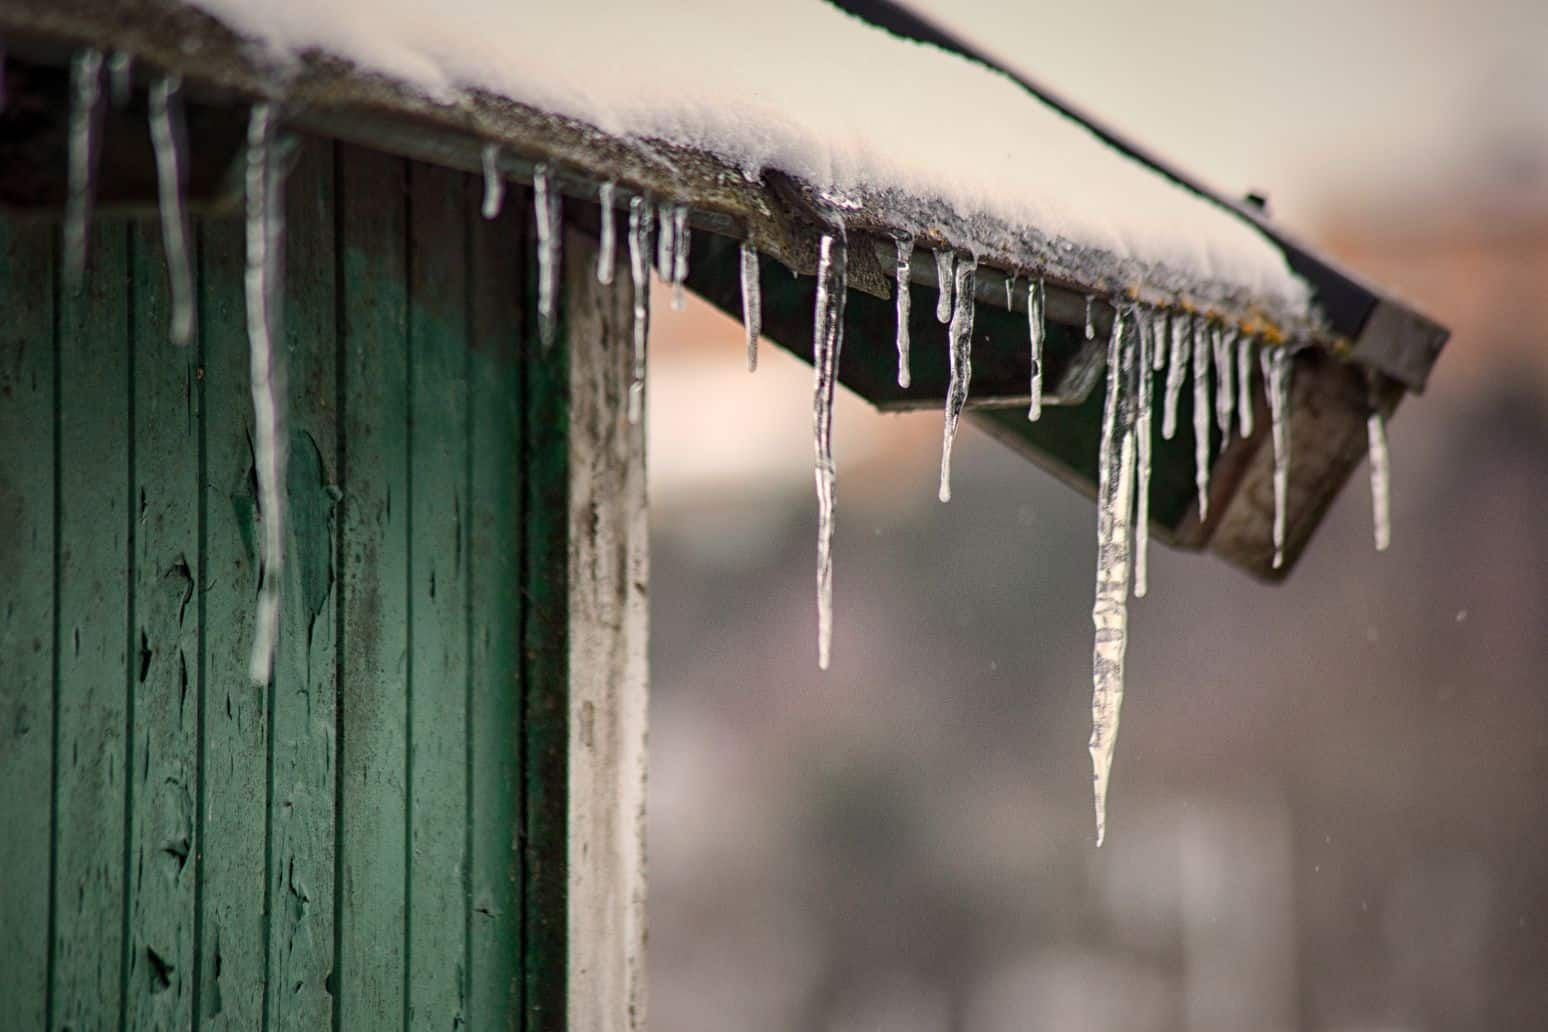 reasons-garden-shed-leaks-5-ice-dam-build-up-unsplash